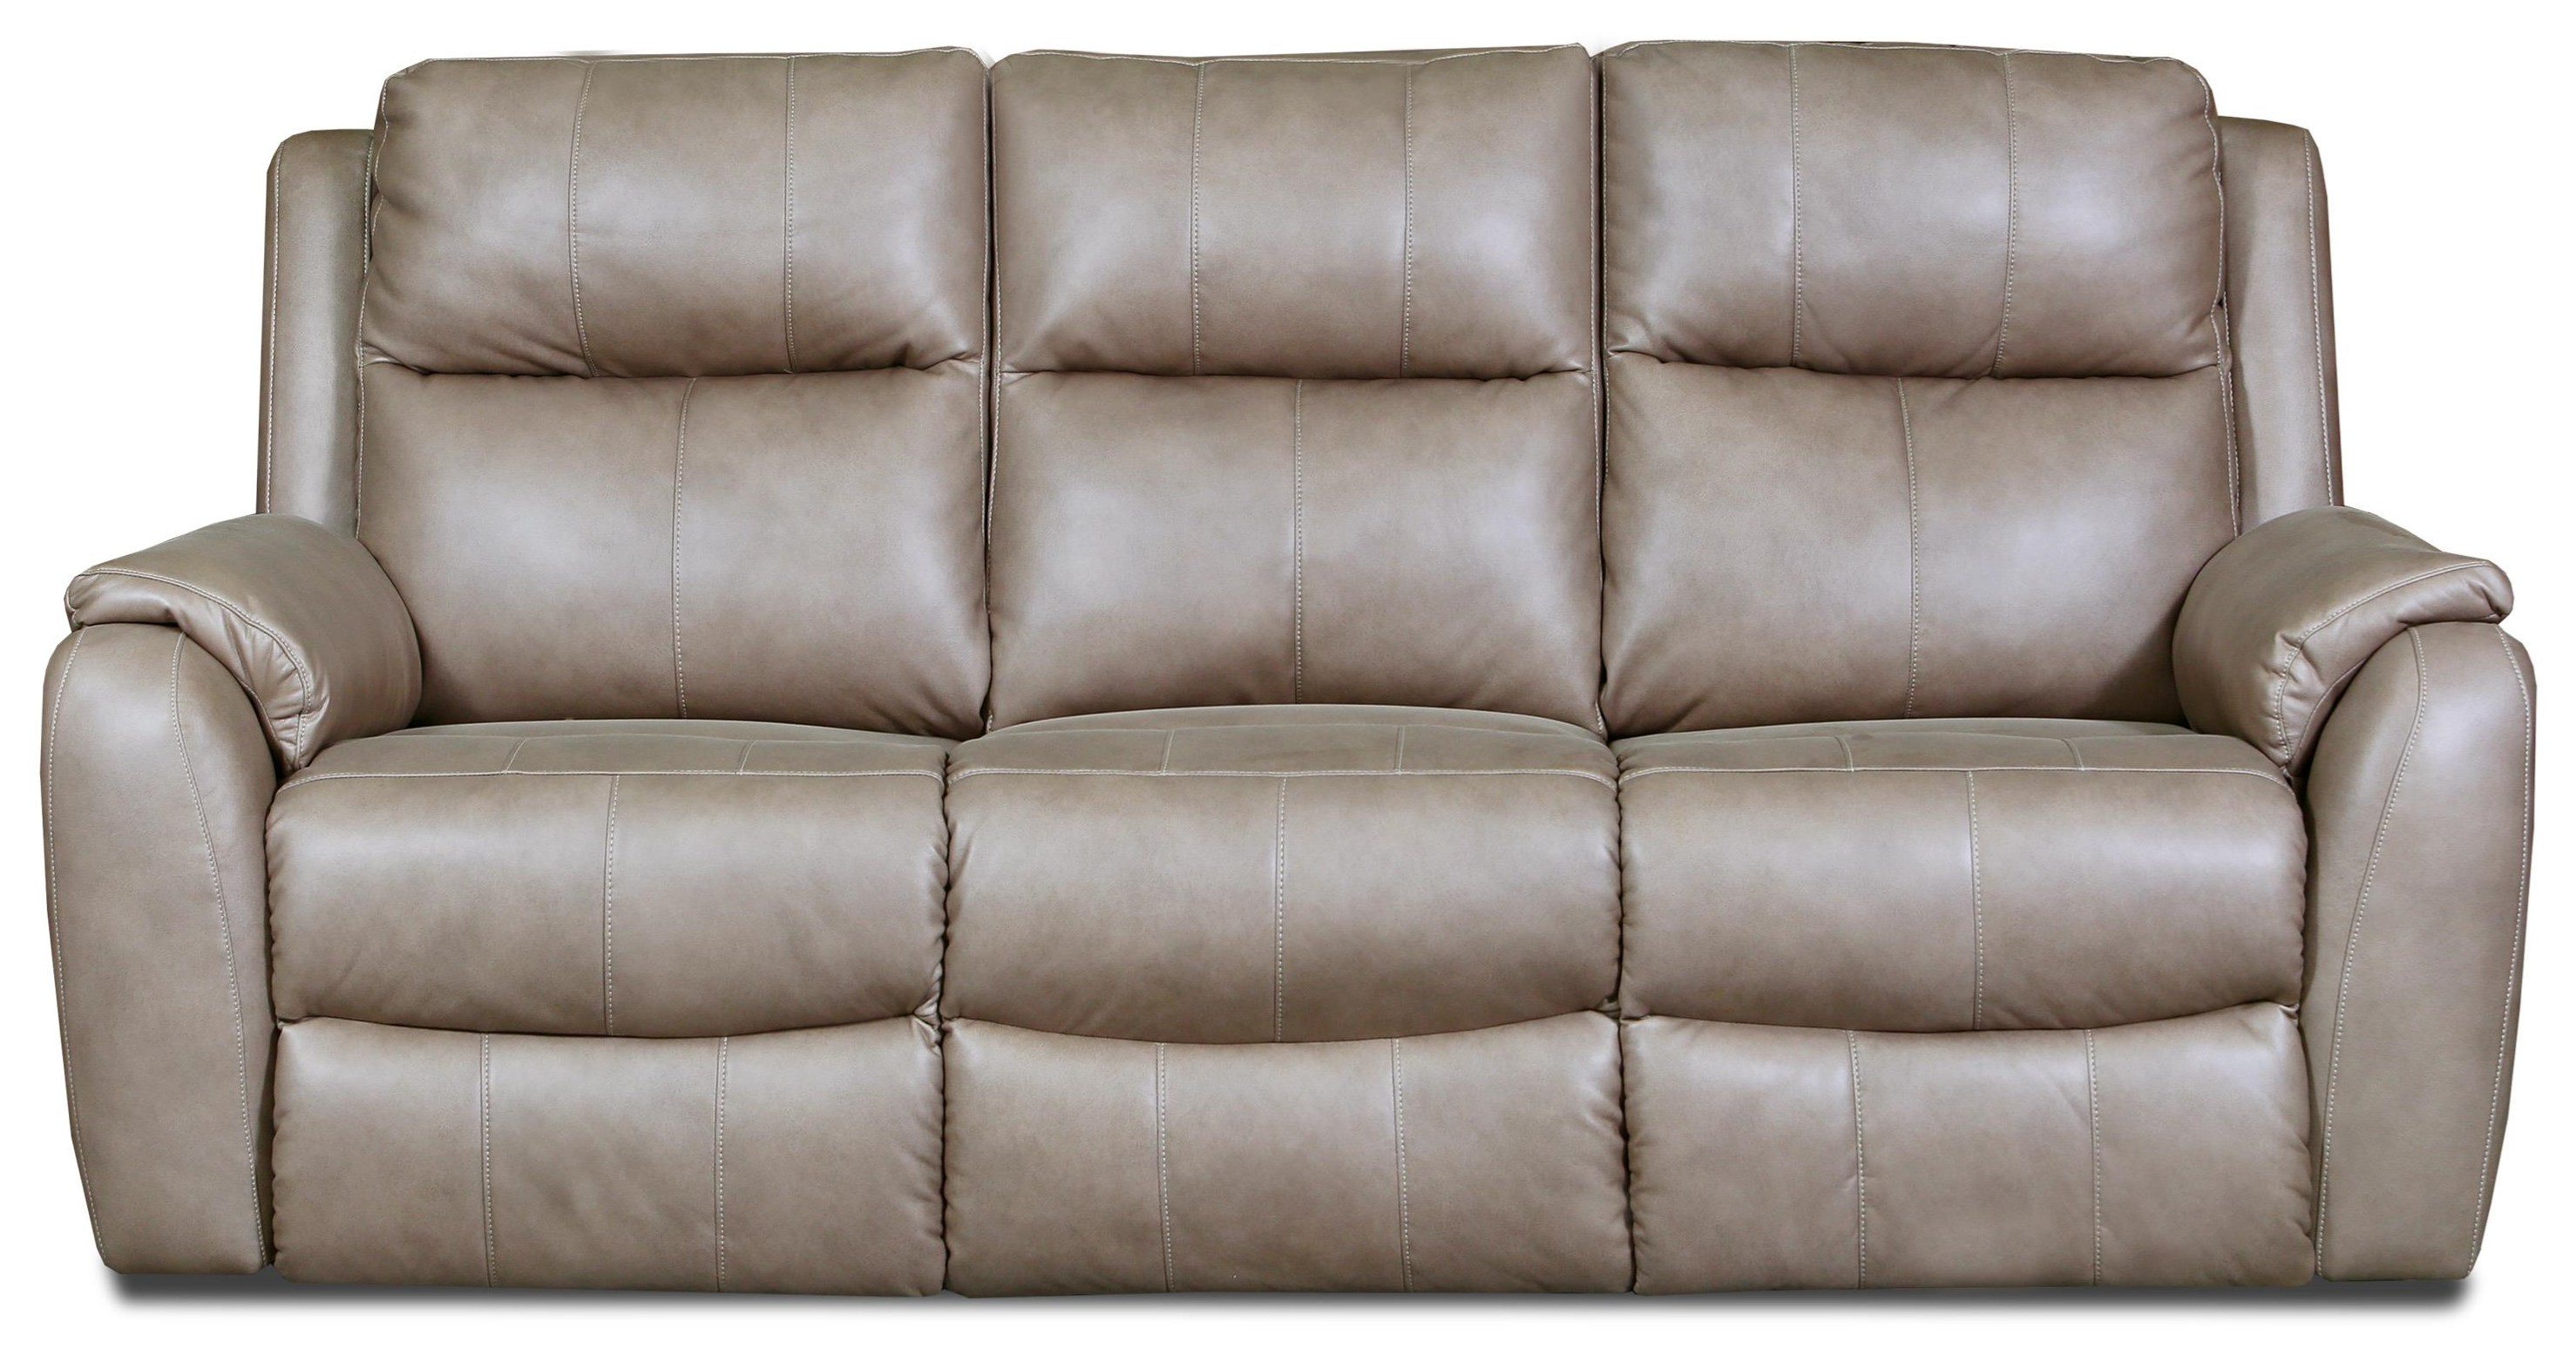 Marquis Double Reclining Sofa by Southern Motion at Furniture Fair - North Carolina